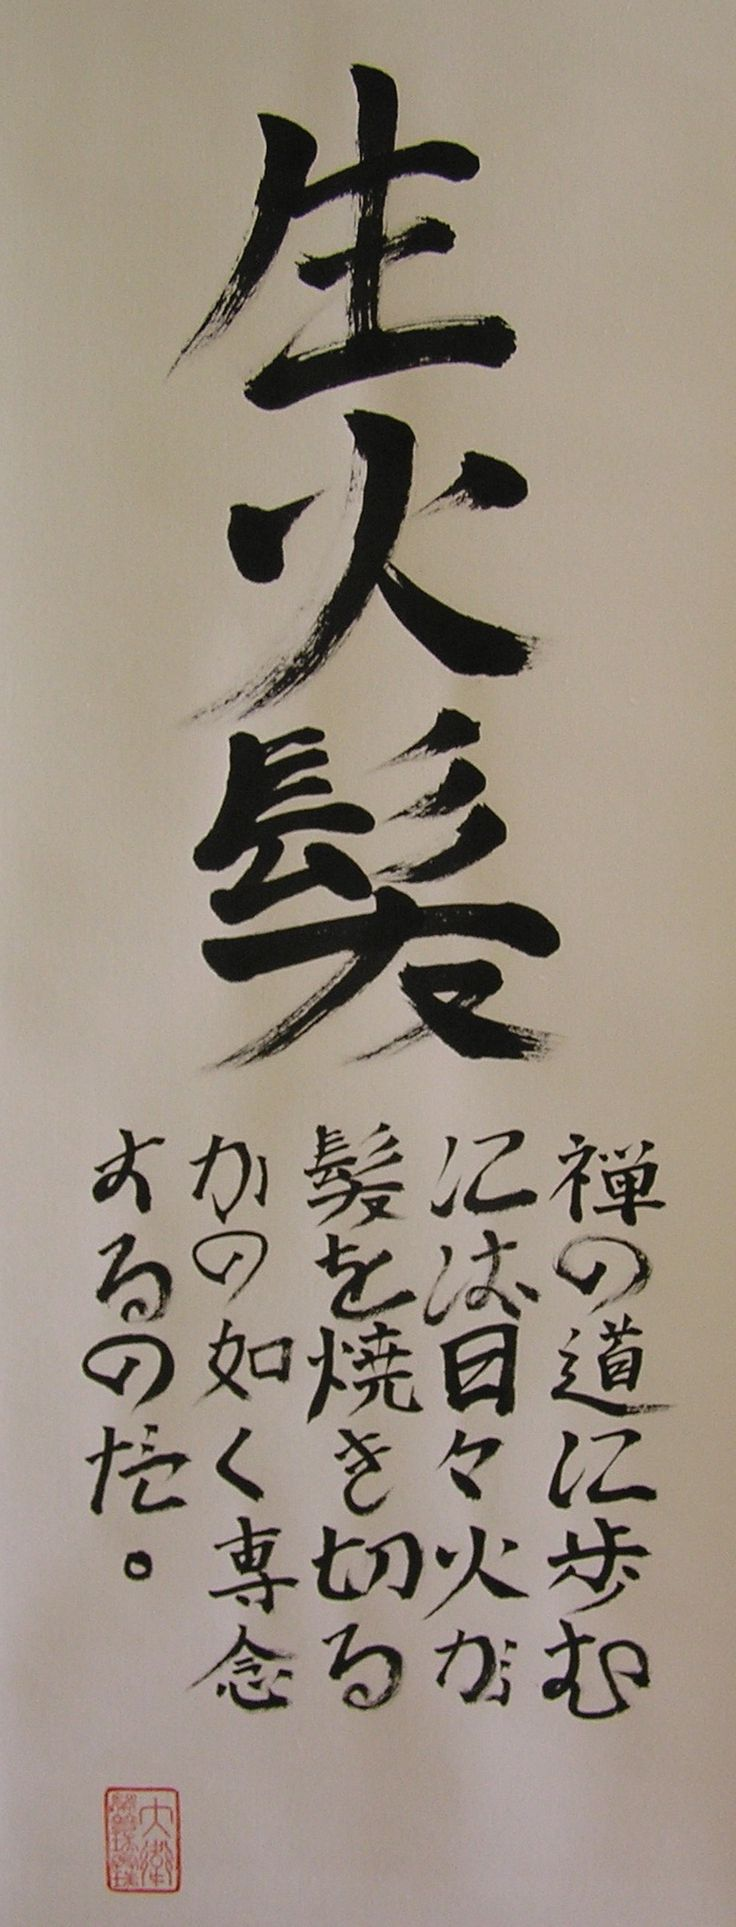 129 Best Images About Bushido On Pinterest Traditional